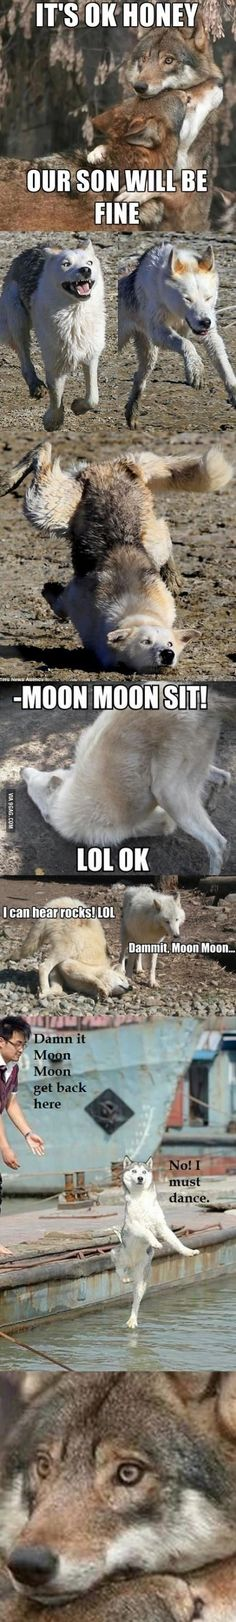 - Funny Husky Meme - Funny Husky Quote - I just discovers the great Moon Moon The post Dammit Moon Moon! appeared first on Gag Dad.